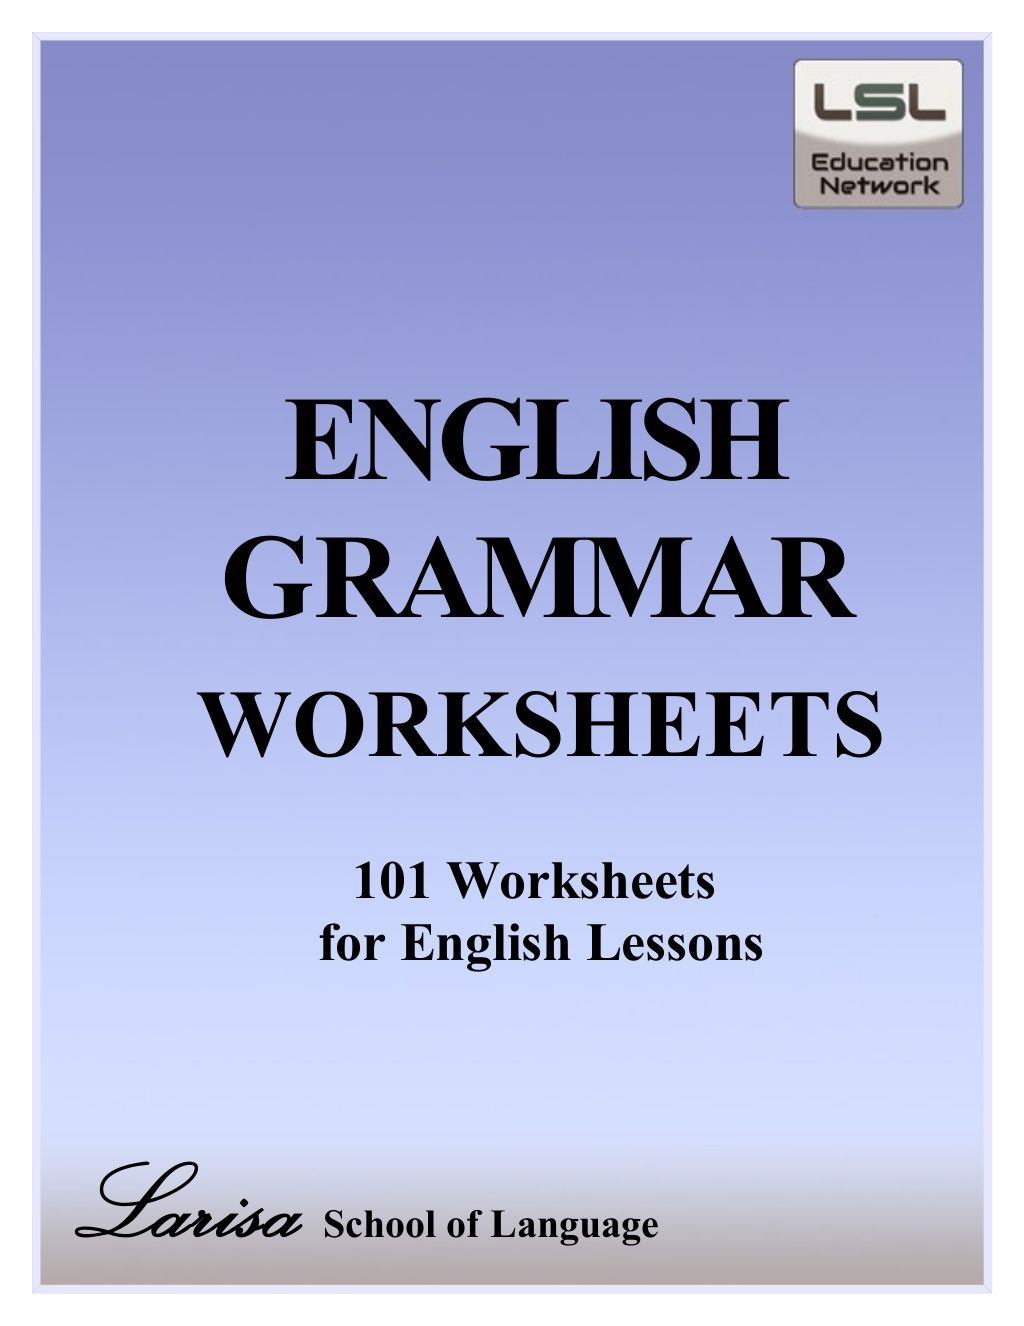 English Grammar Worksheets Free Ebook Download From